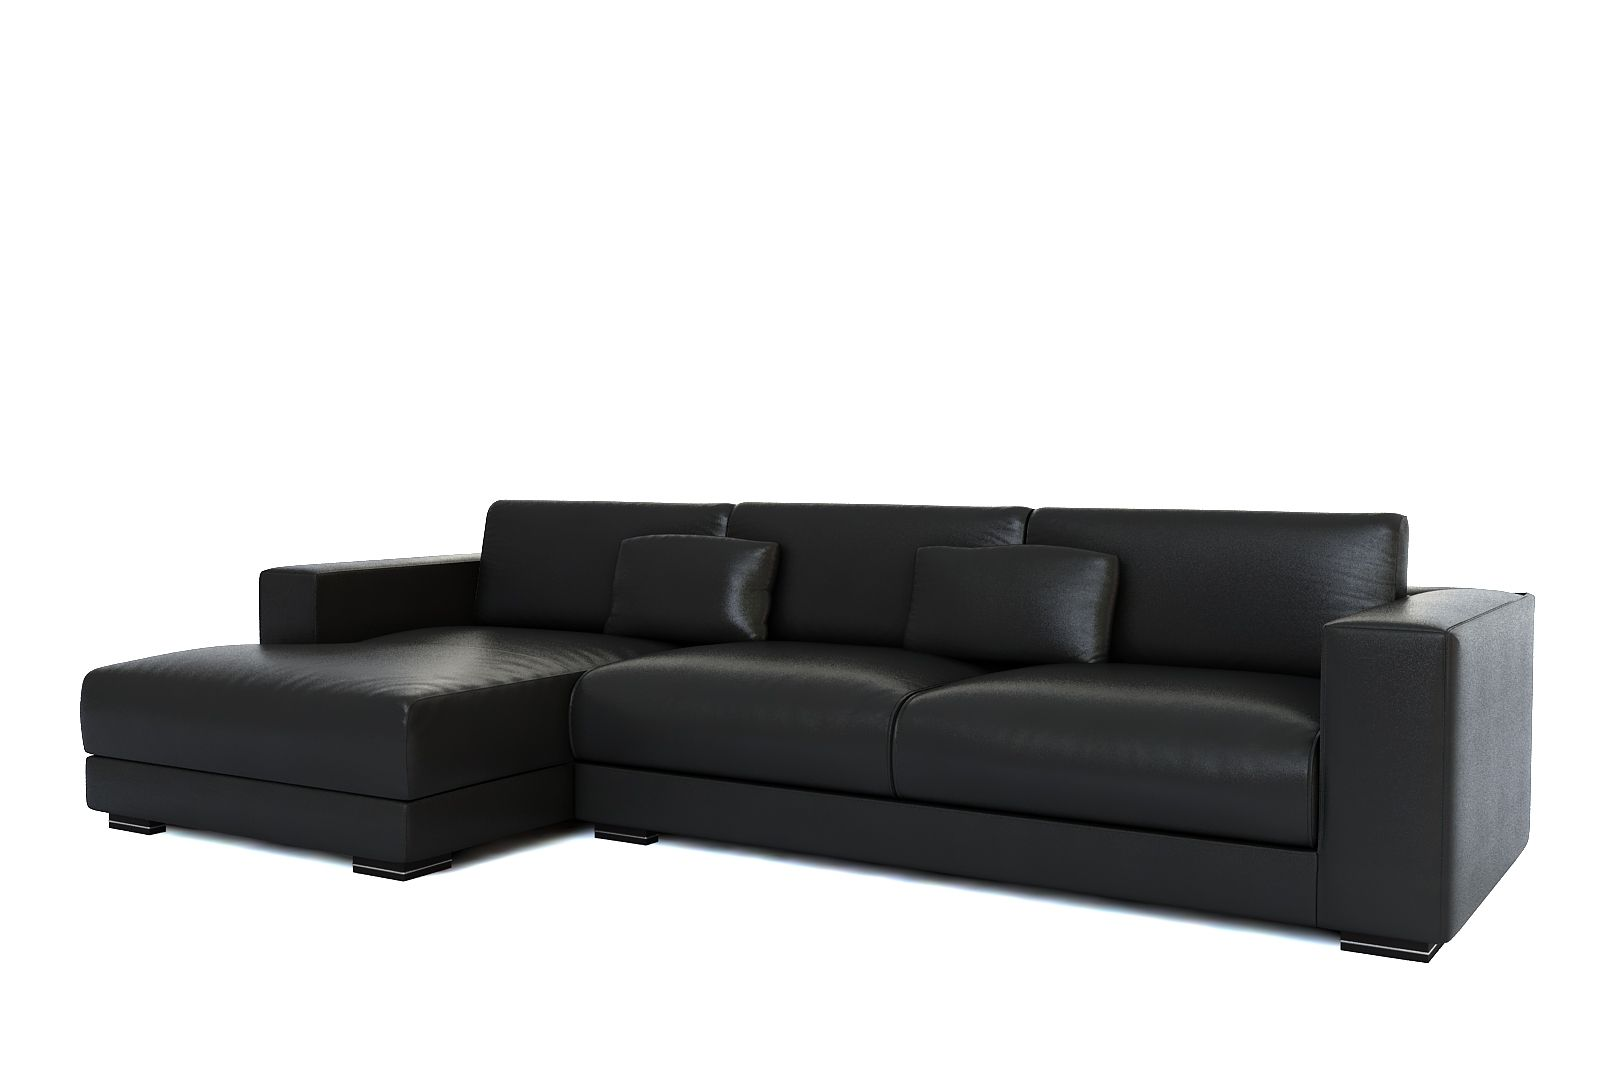 Design Black Couches black leather couch google zoeken housin in style pinterest zoeken